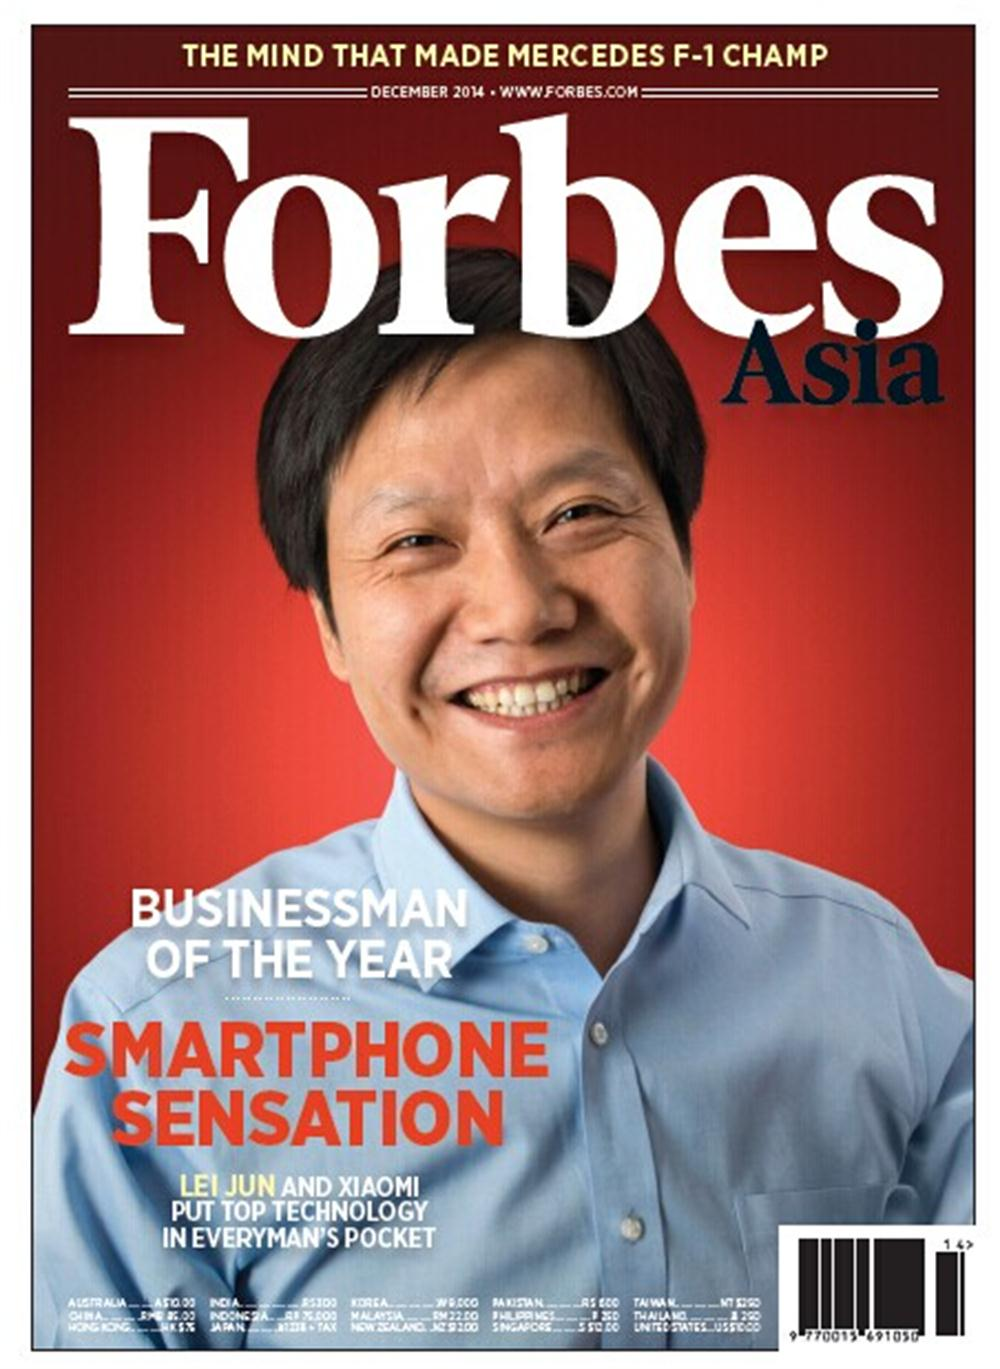 Founder and CEO of XiaoMi, and worth $9.1bn at age 45, Lei Jun's charisma and visionary thinking has grown his startup to where it is today. He still has big dreams for his firm